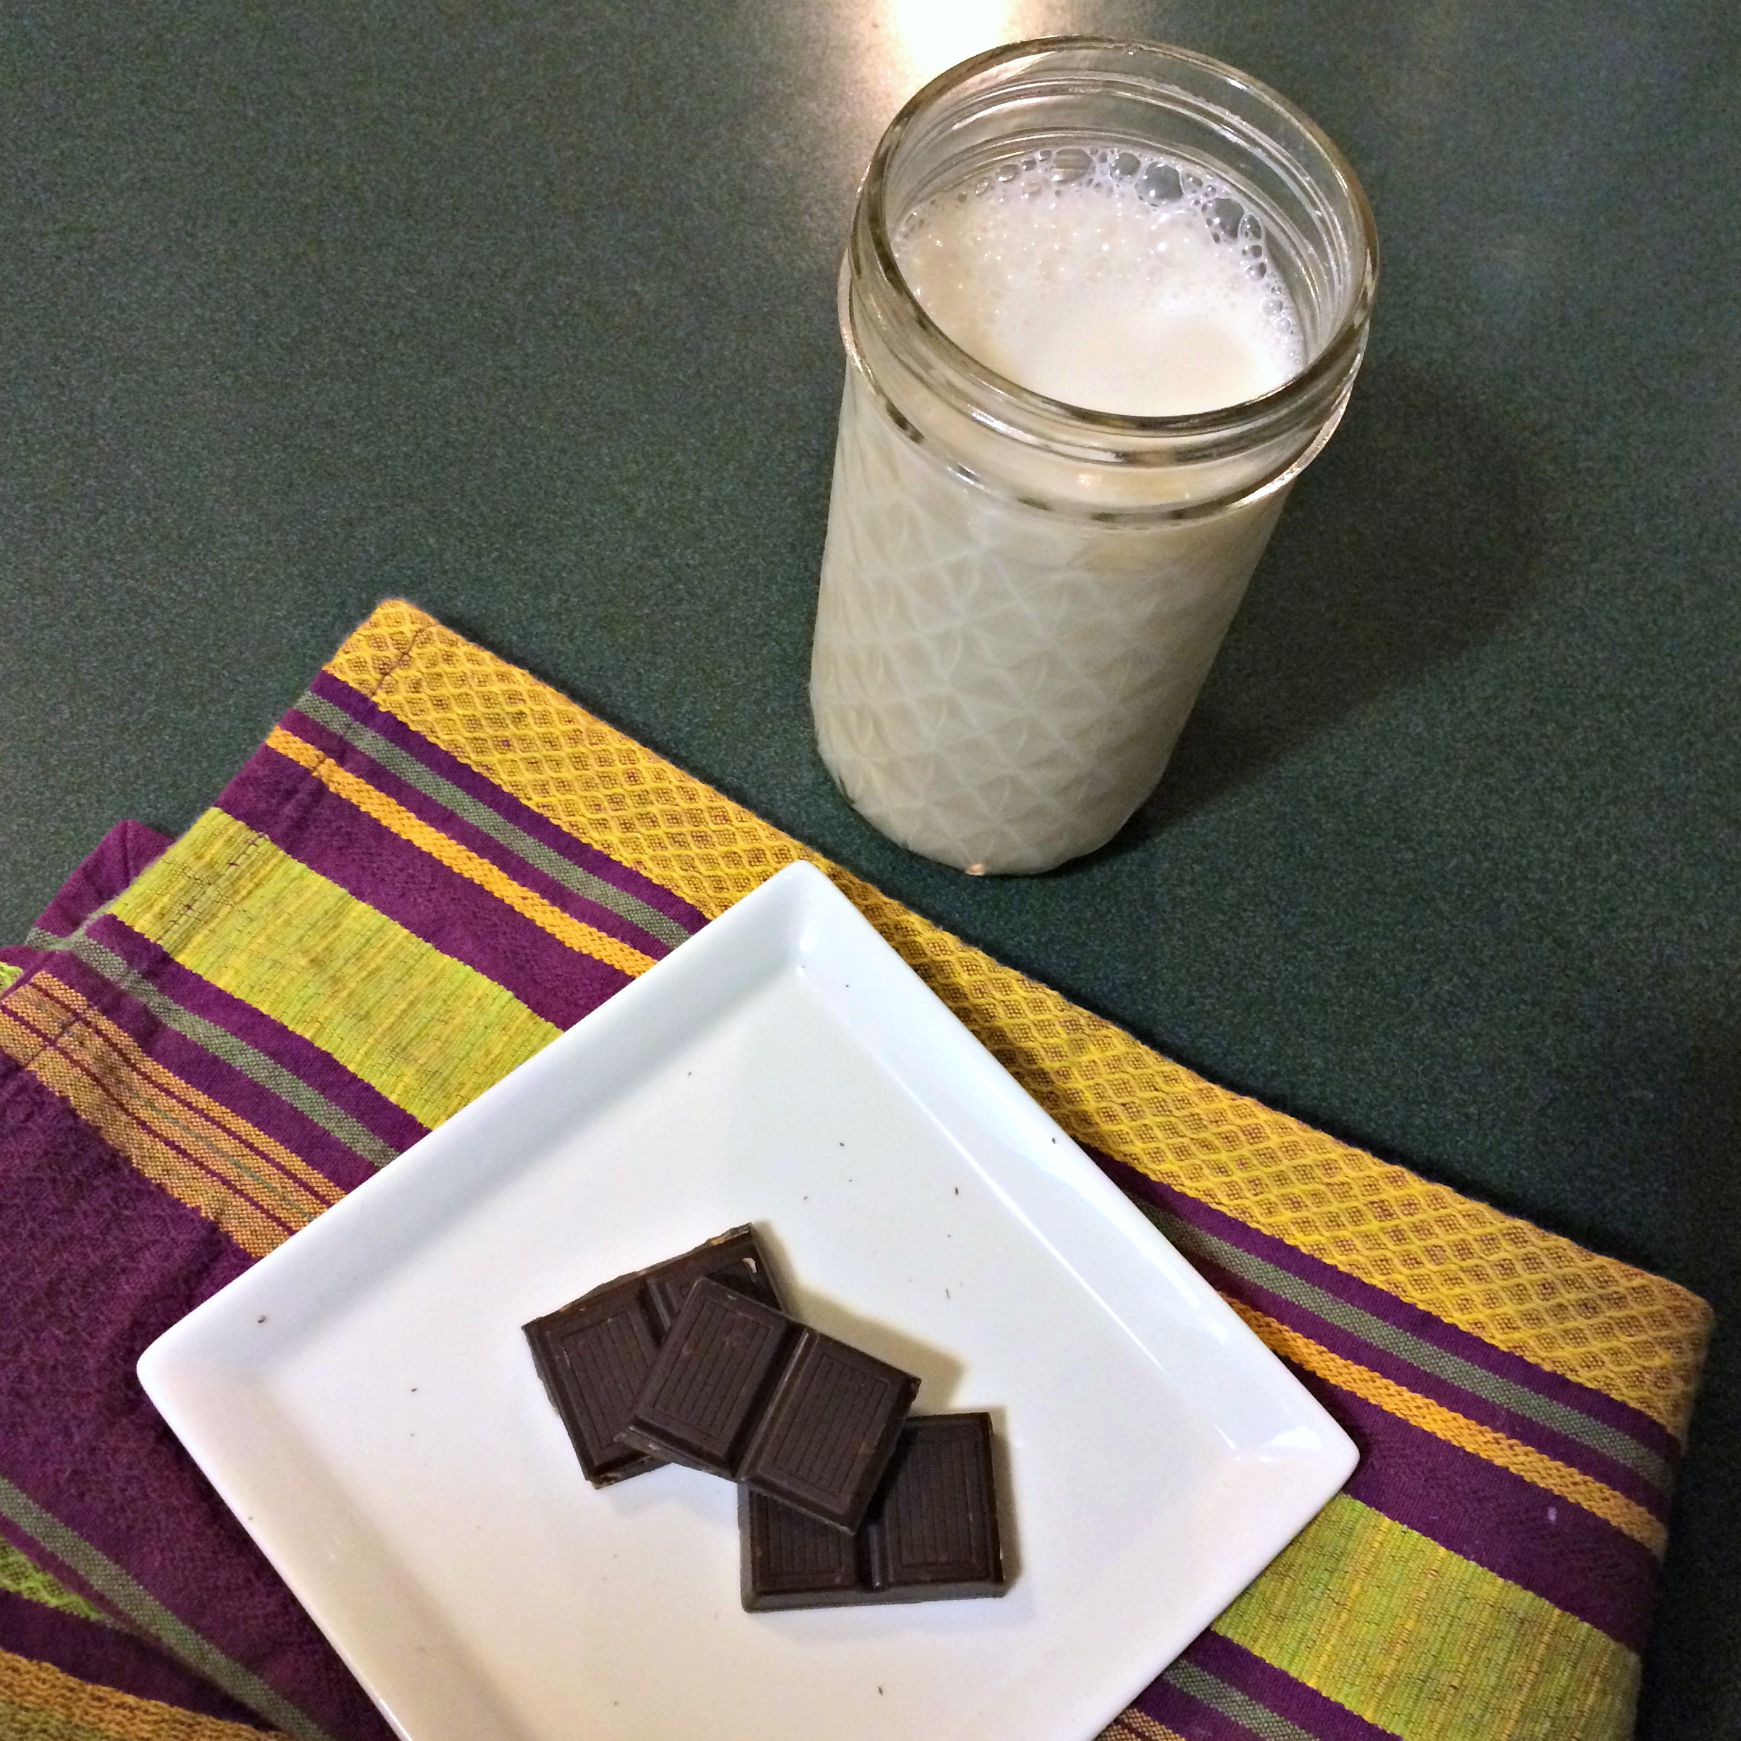 healthy dessert - dark chocolate squares and almond milk